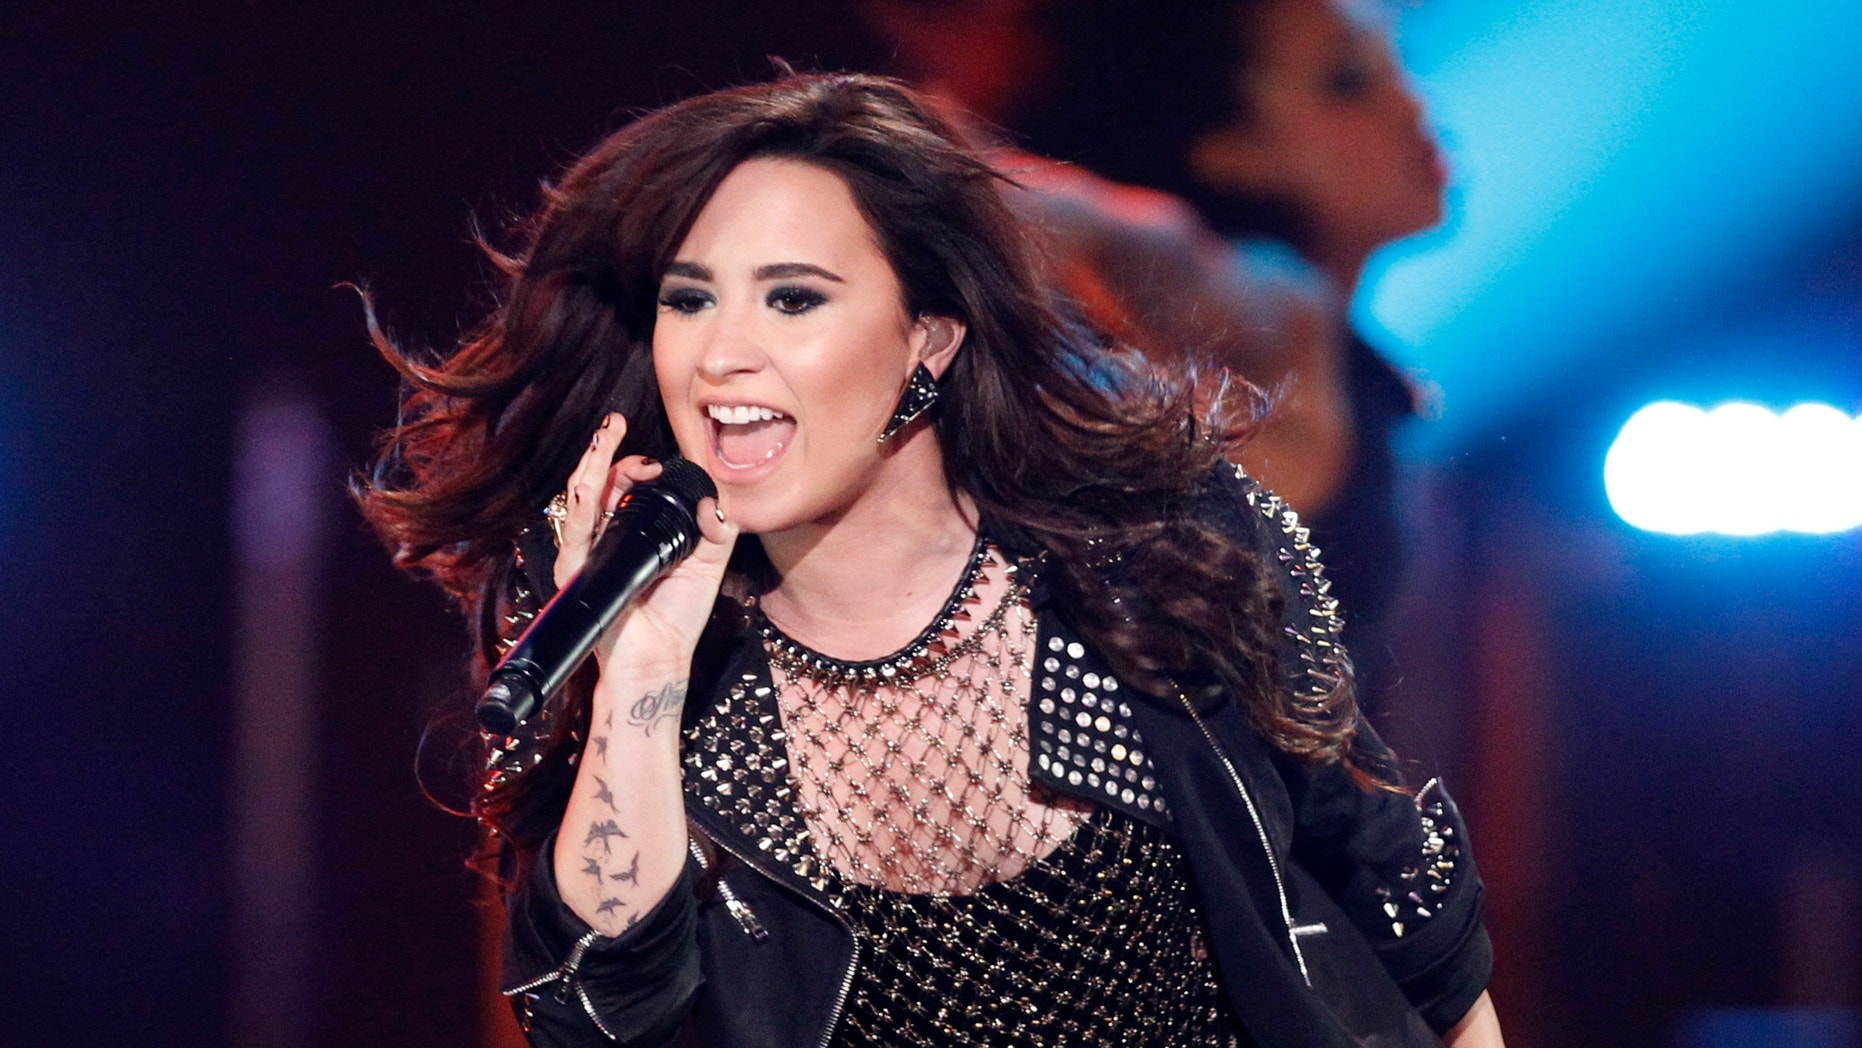 """Recording artist Demi Lovato performs """"Give Your Heart a Break"""" during the VH1 Divas 2012 show in Los Angeles, December 16, 2012."""